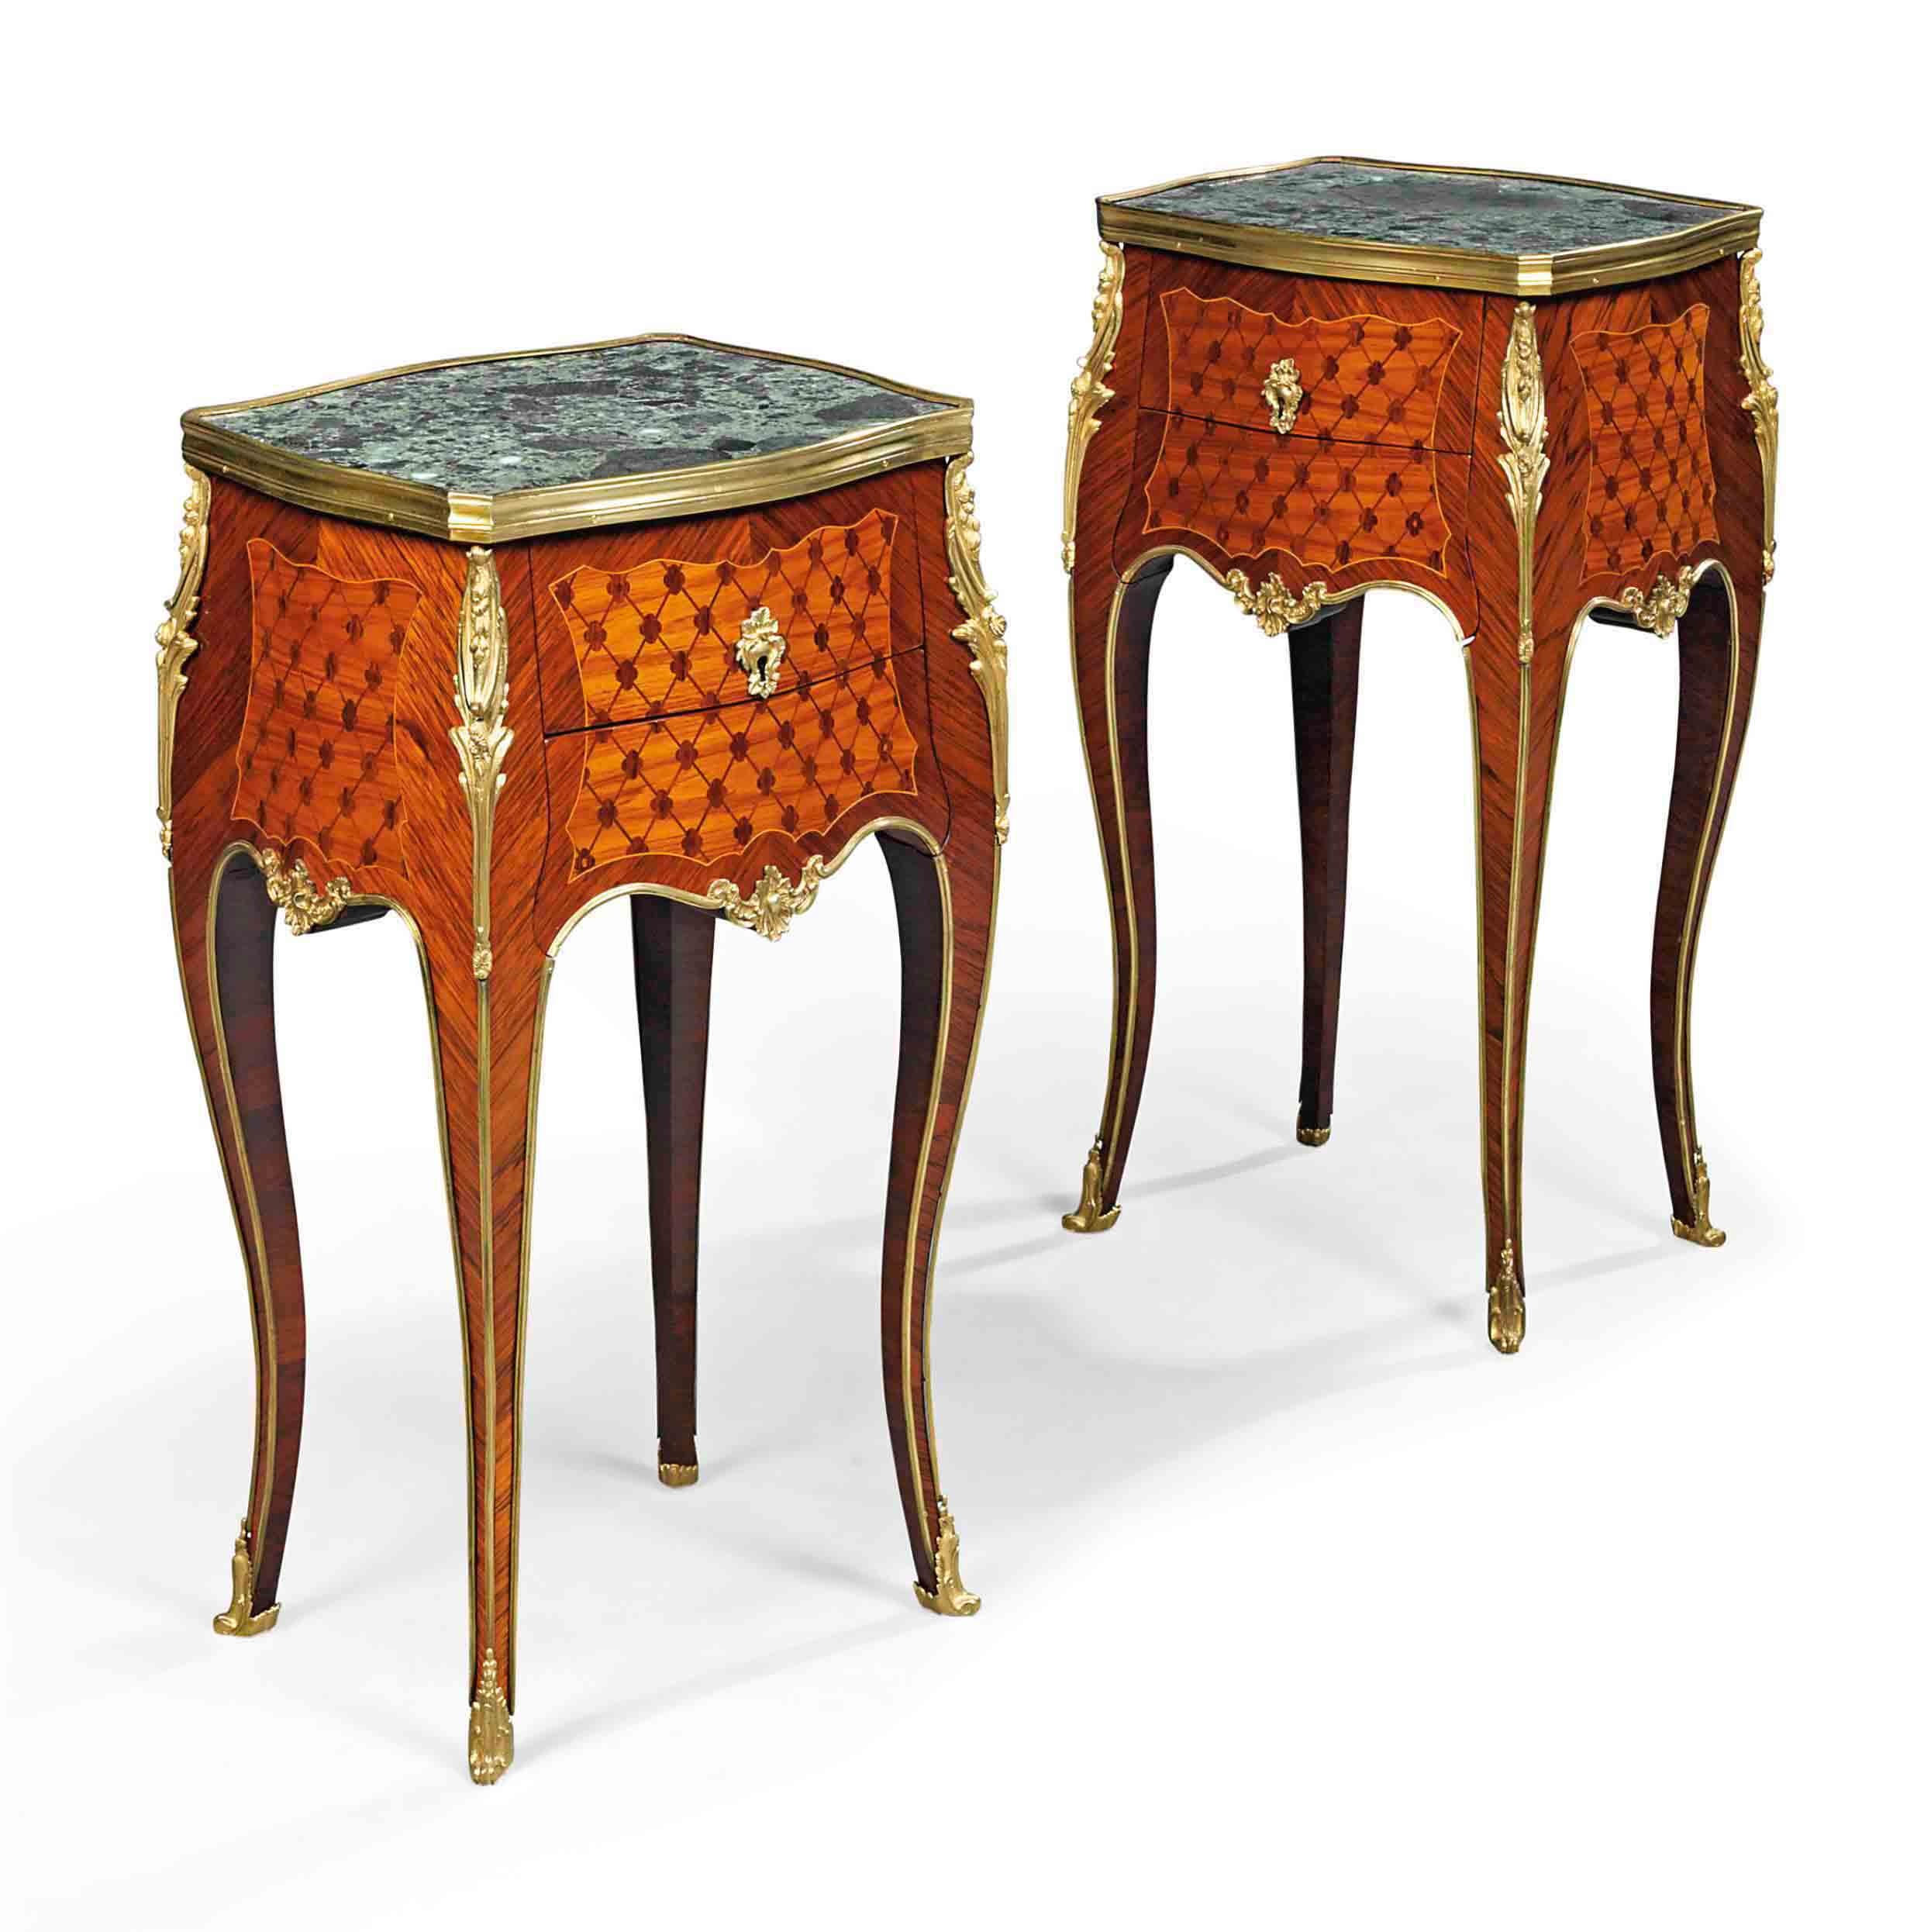 Table De Nuit New York A Pair Of French Ormolu Mounted Tulipwood And Kingwood